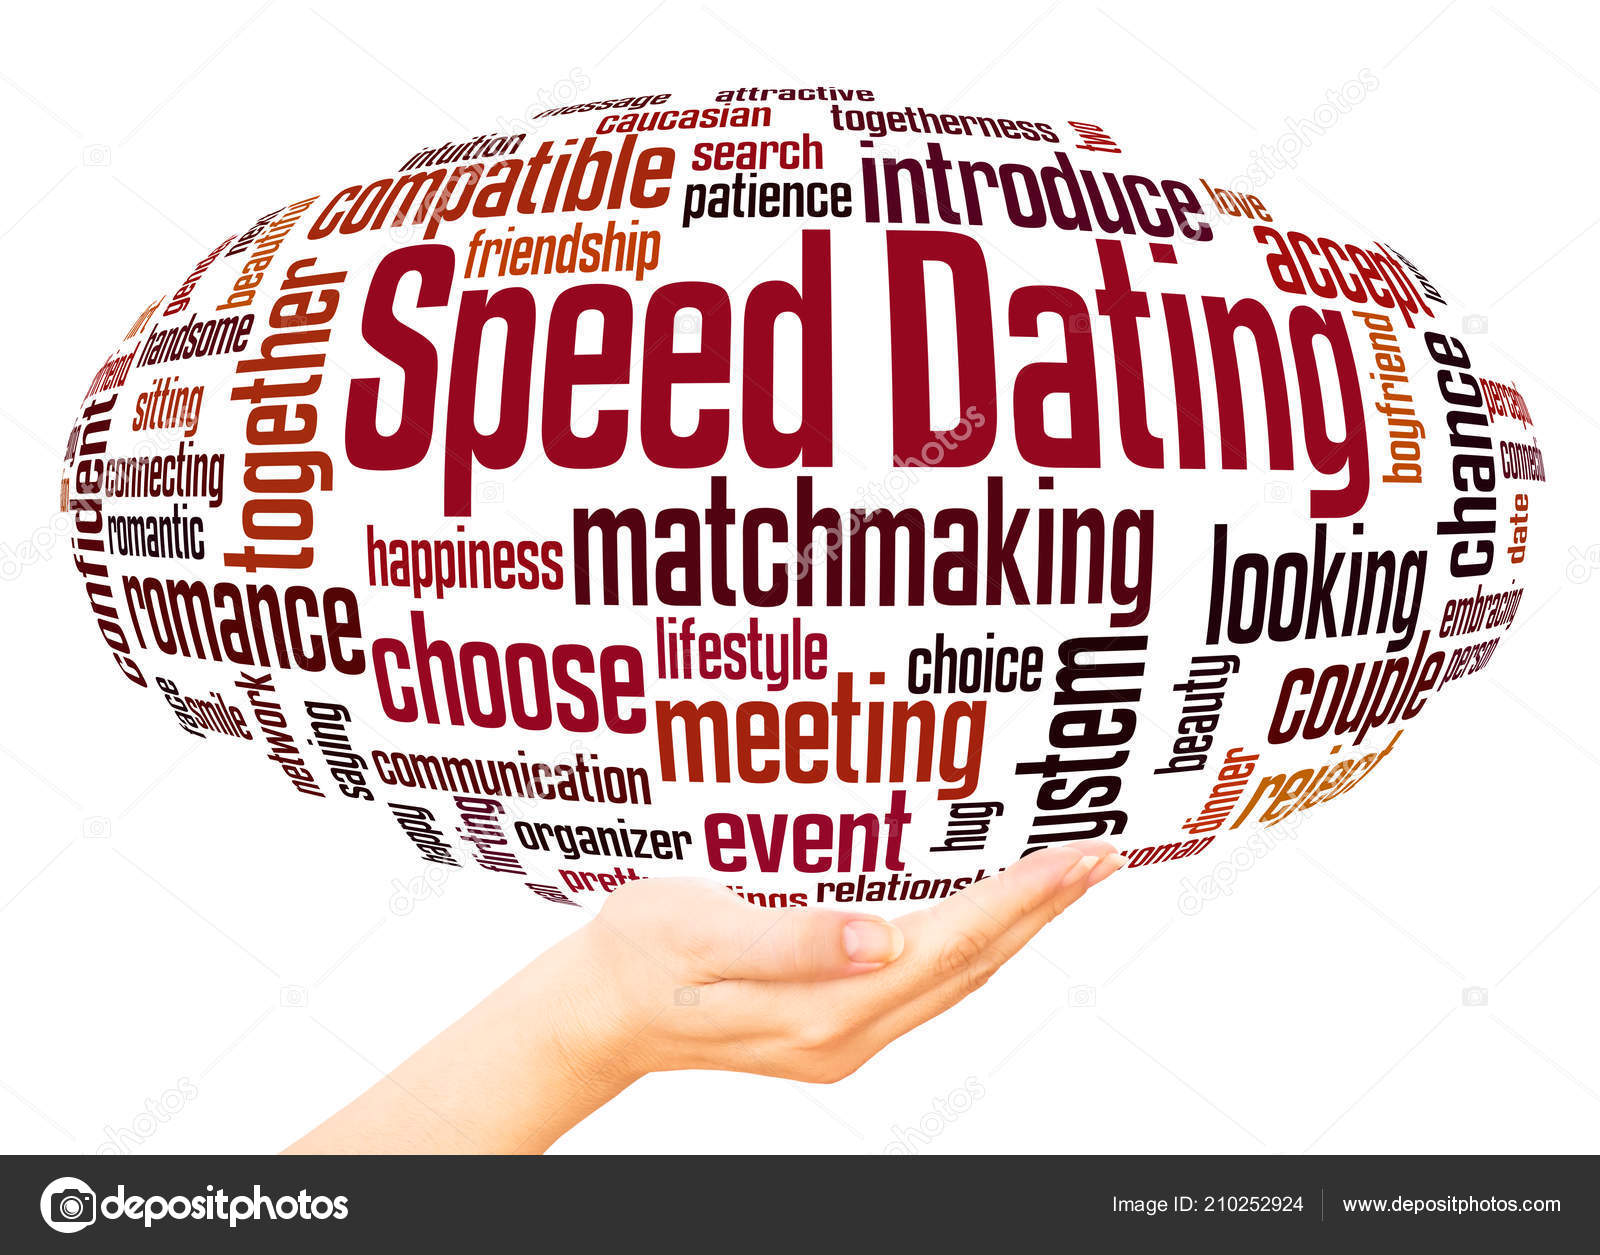 another word for speed dating